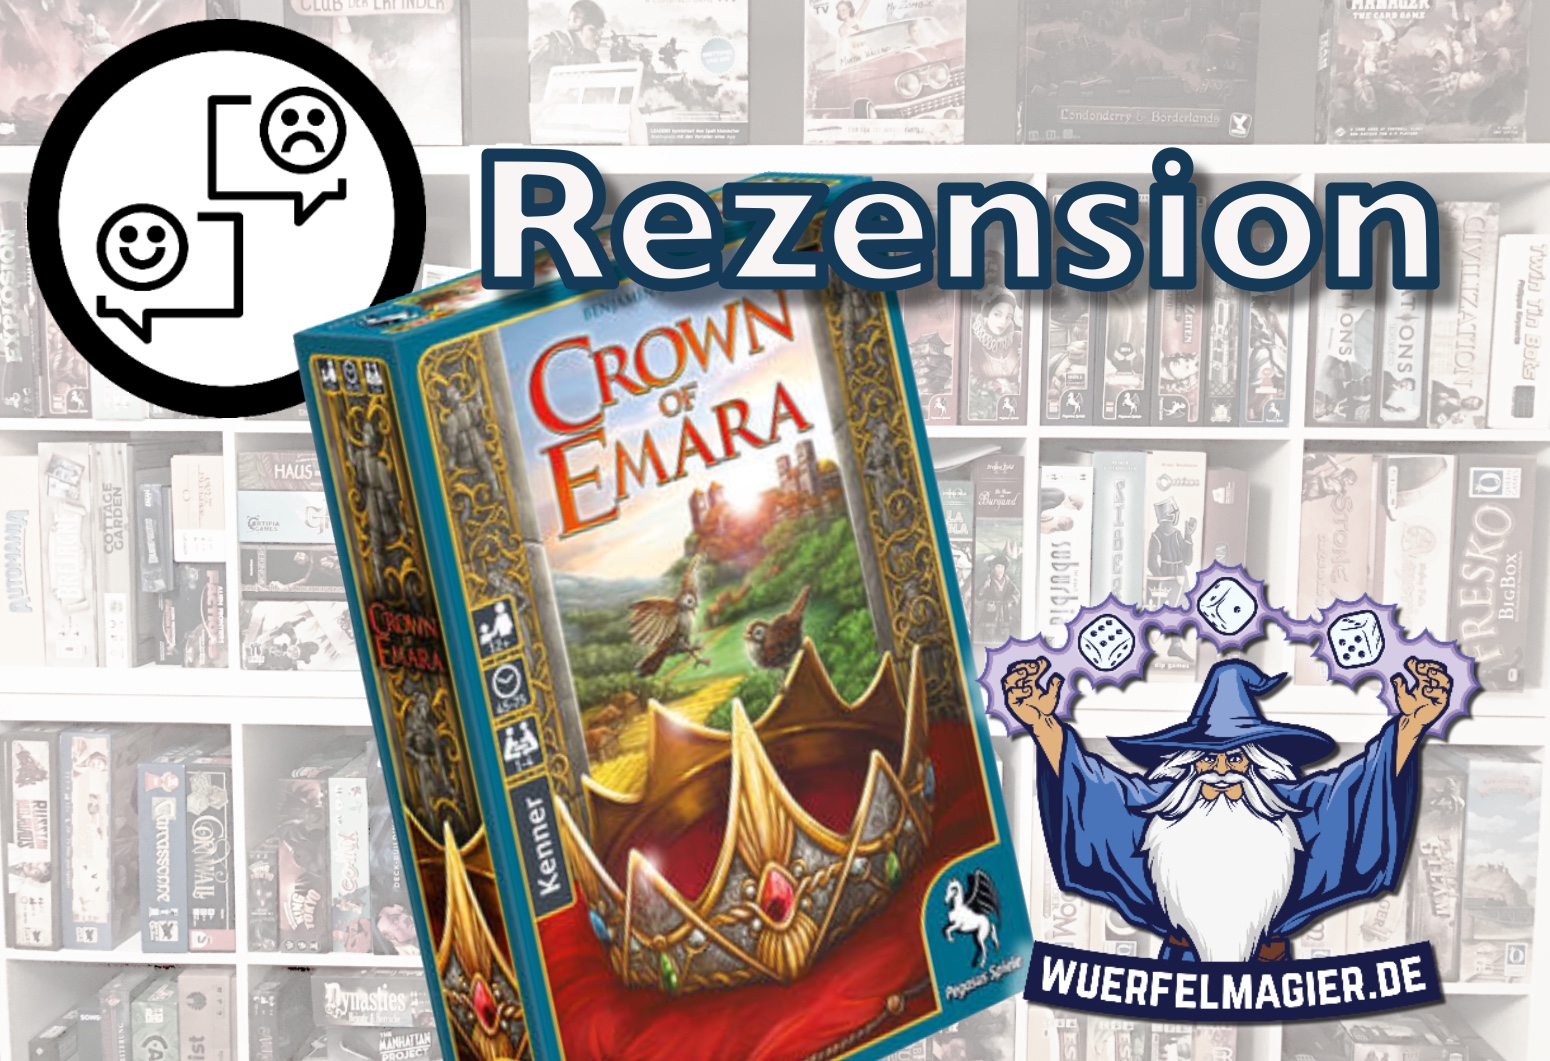 Rezension Crown of Emara Pegasus Spiele Rezension Review Wuerfelmagier Würfelmagier